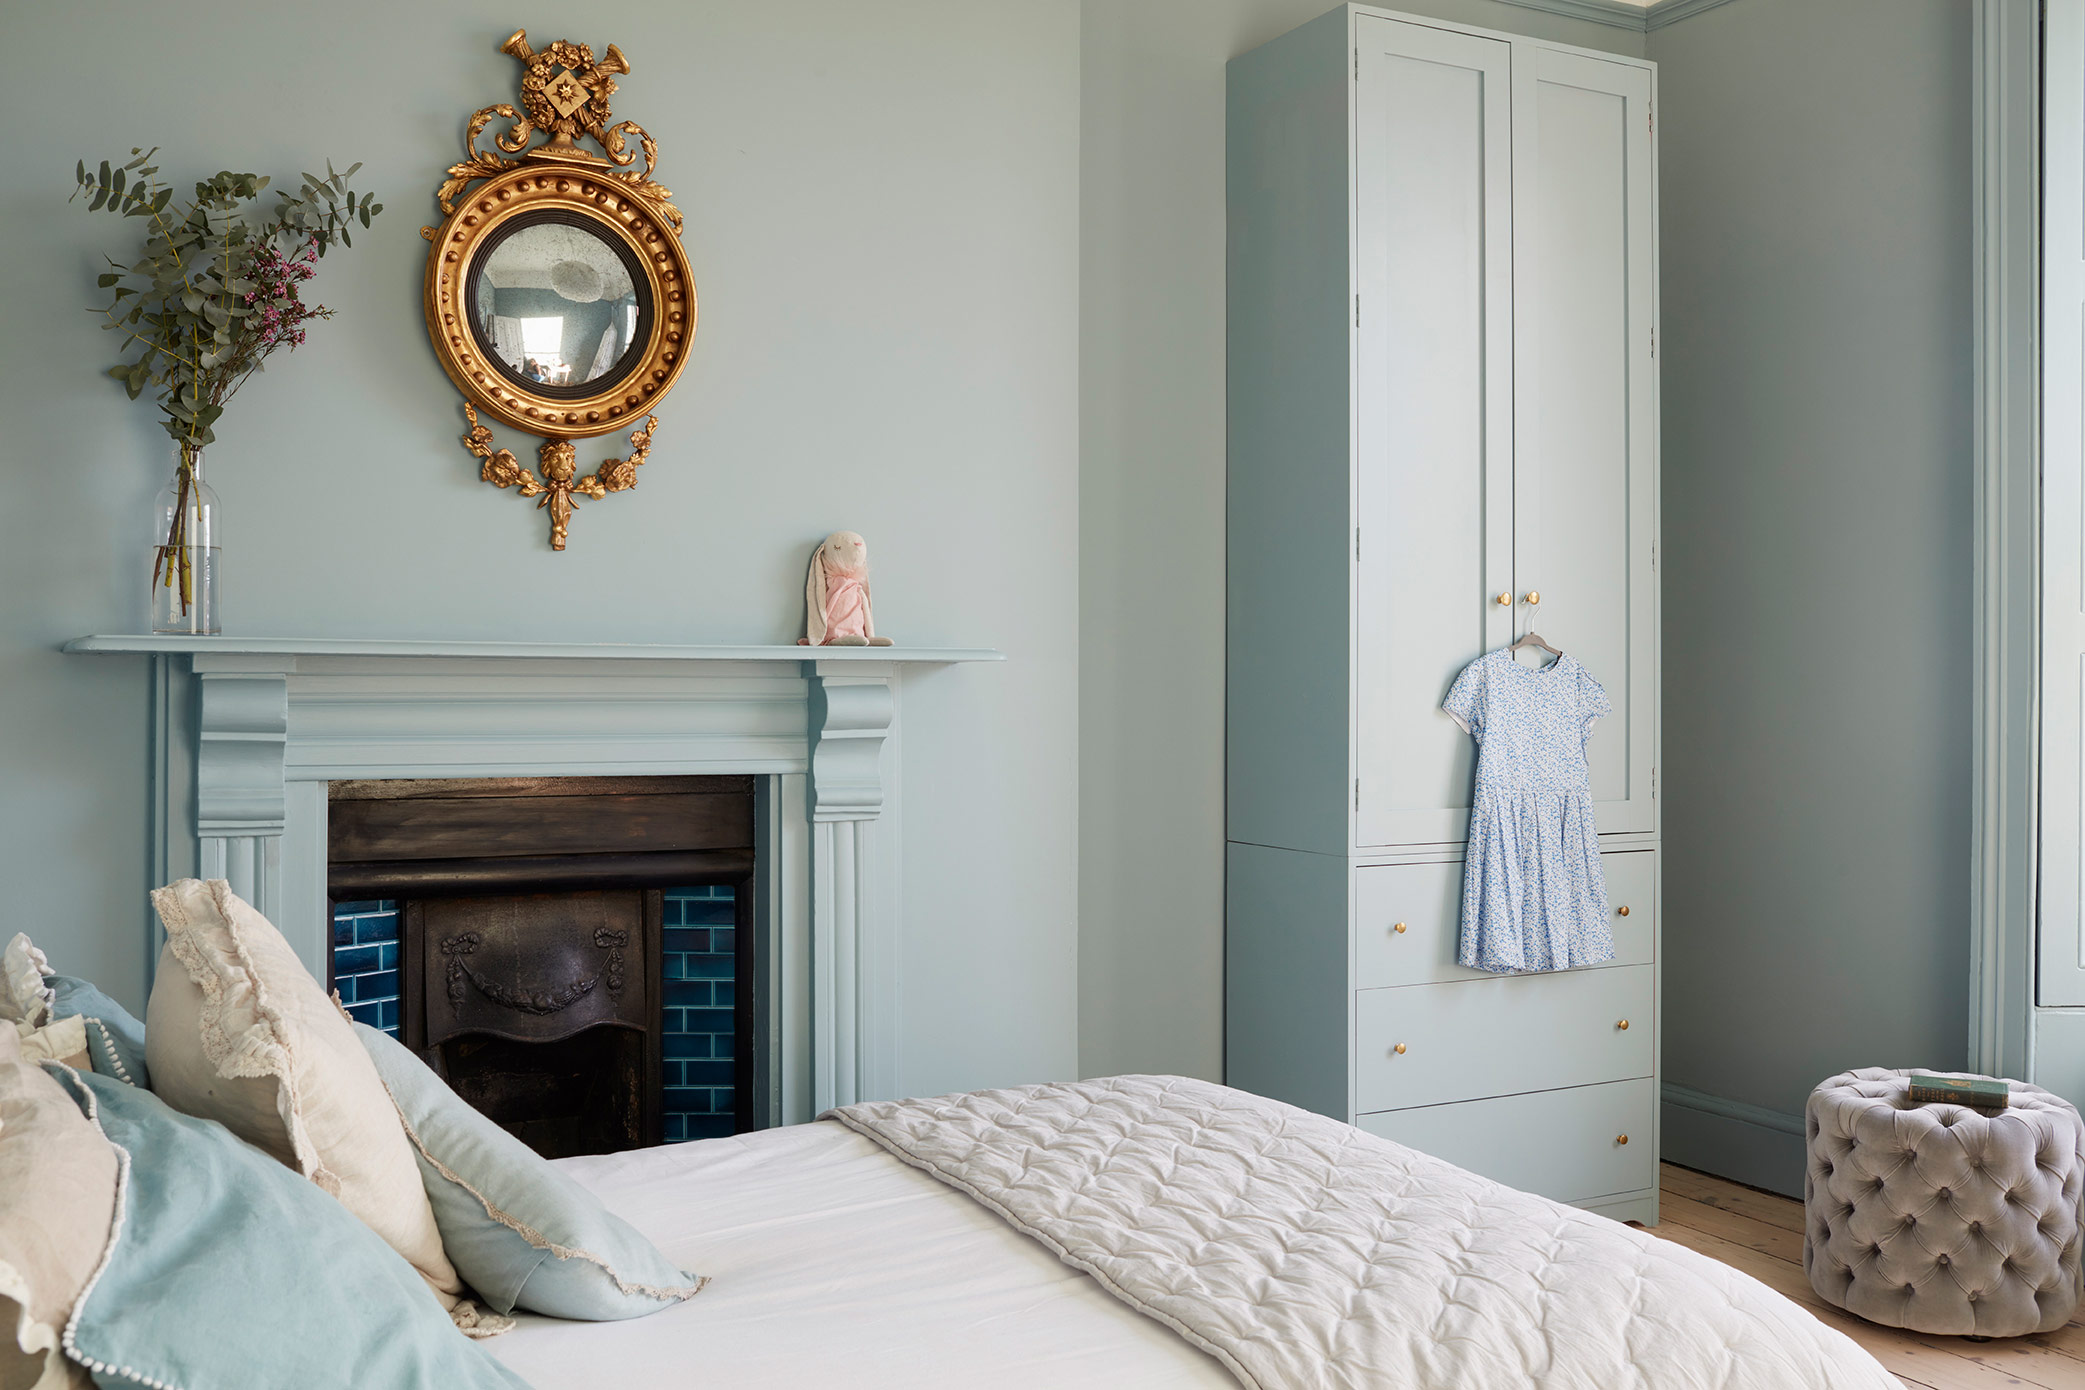 P&J – Rathgar – Emily Bedroom